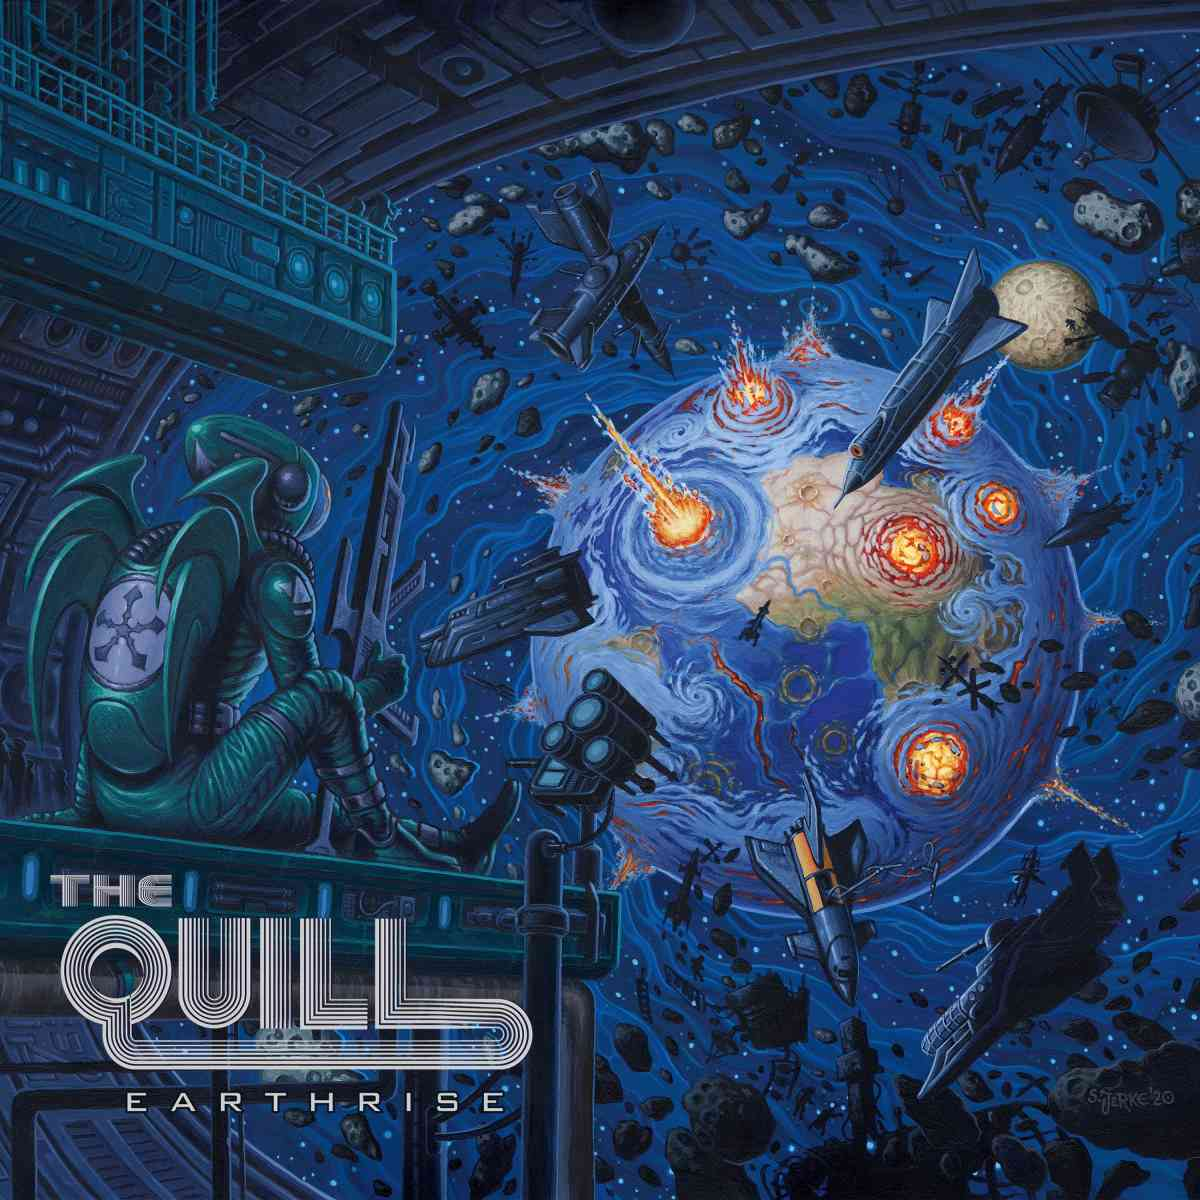 The Quill - Earthrise - album cover